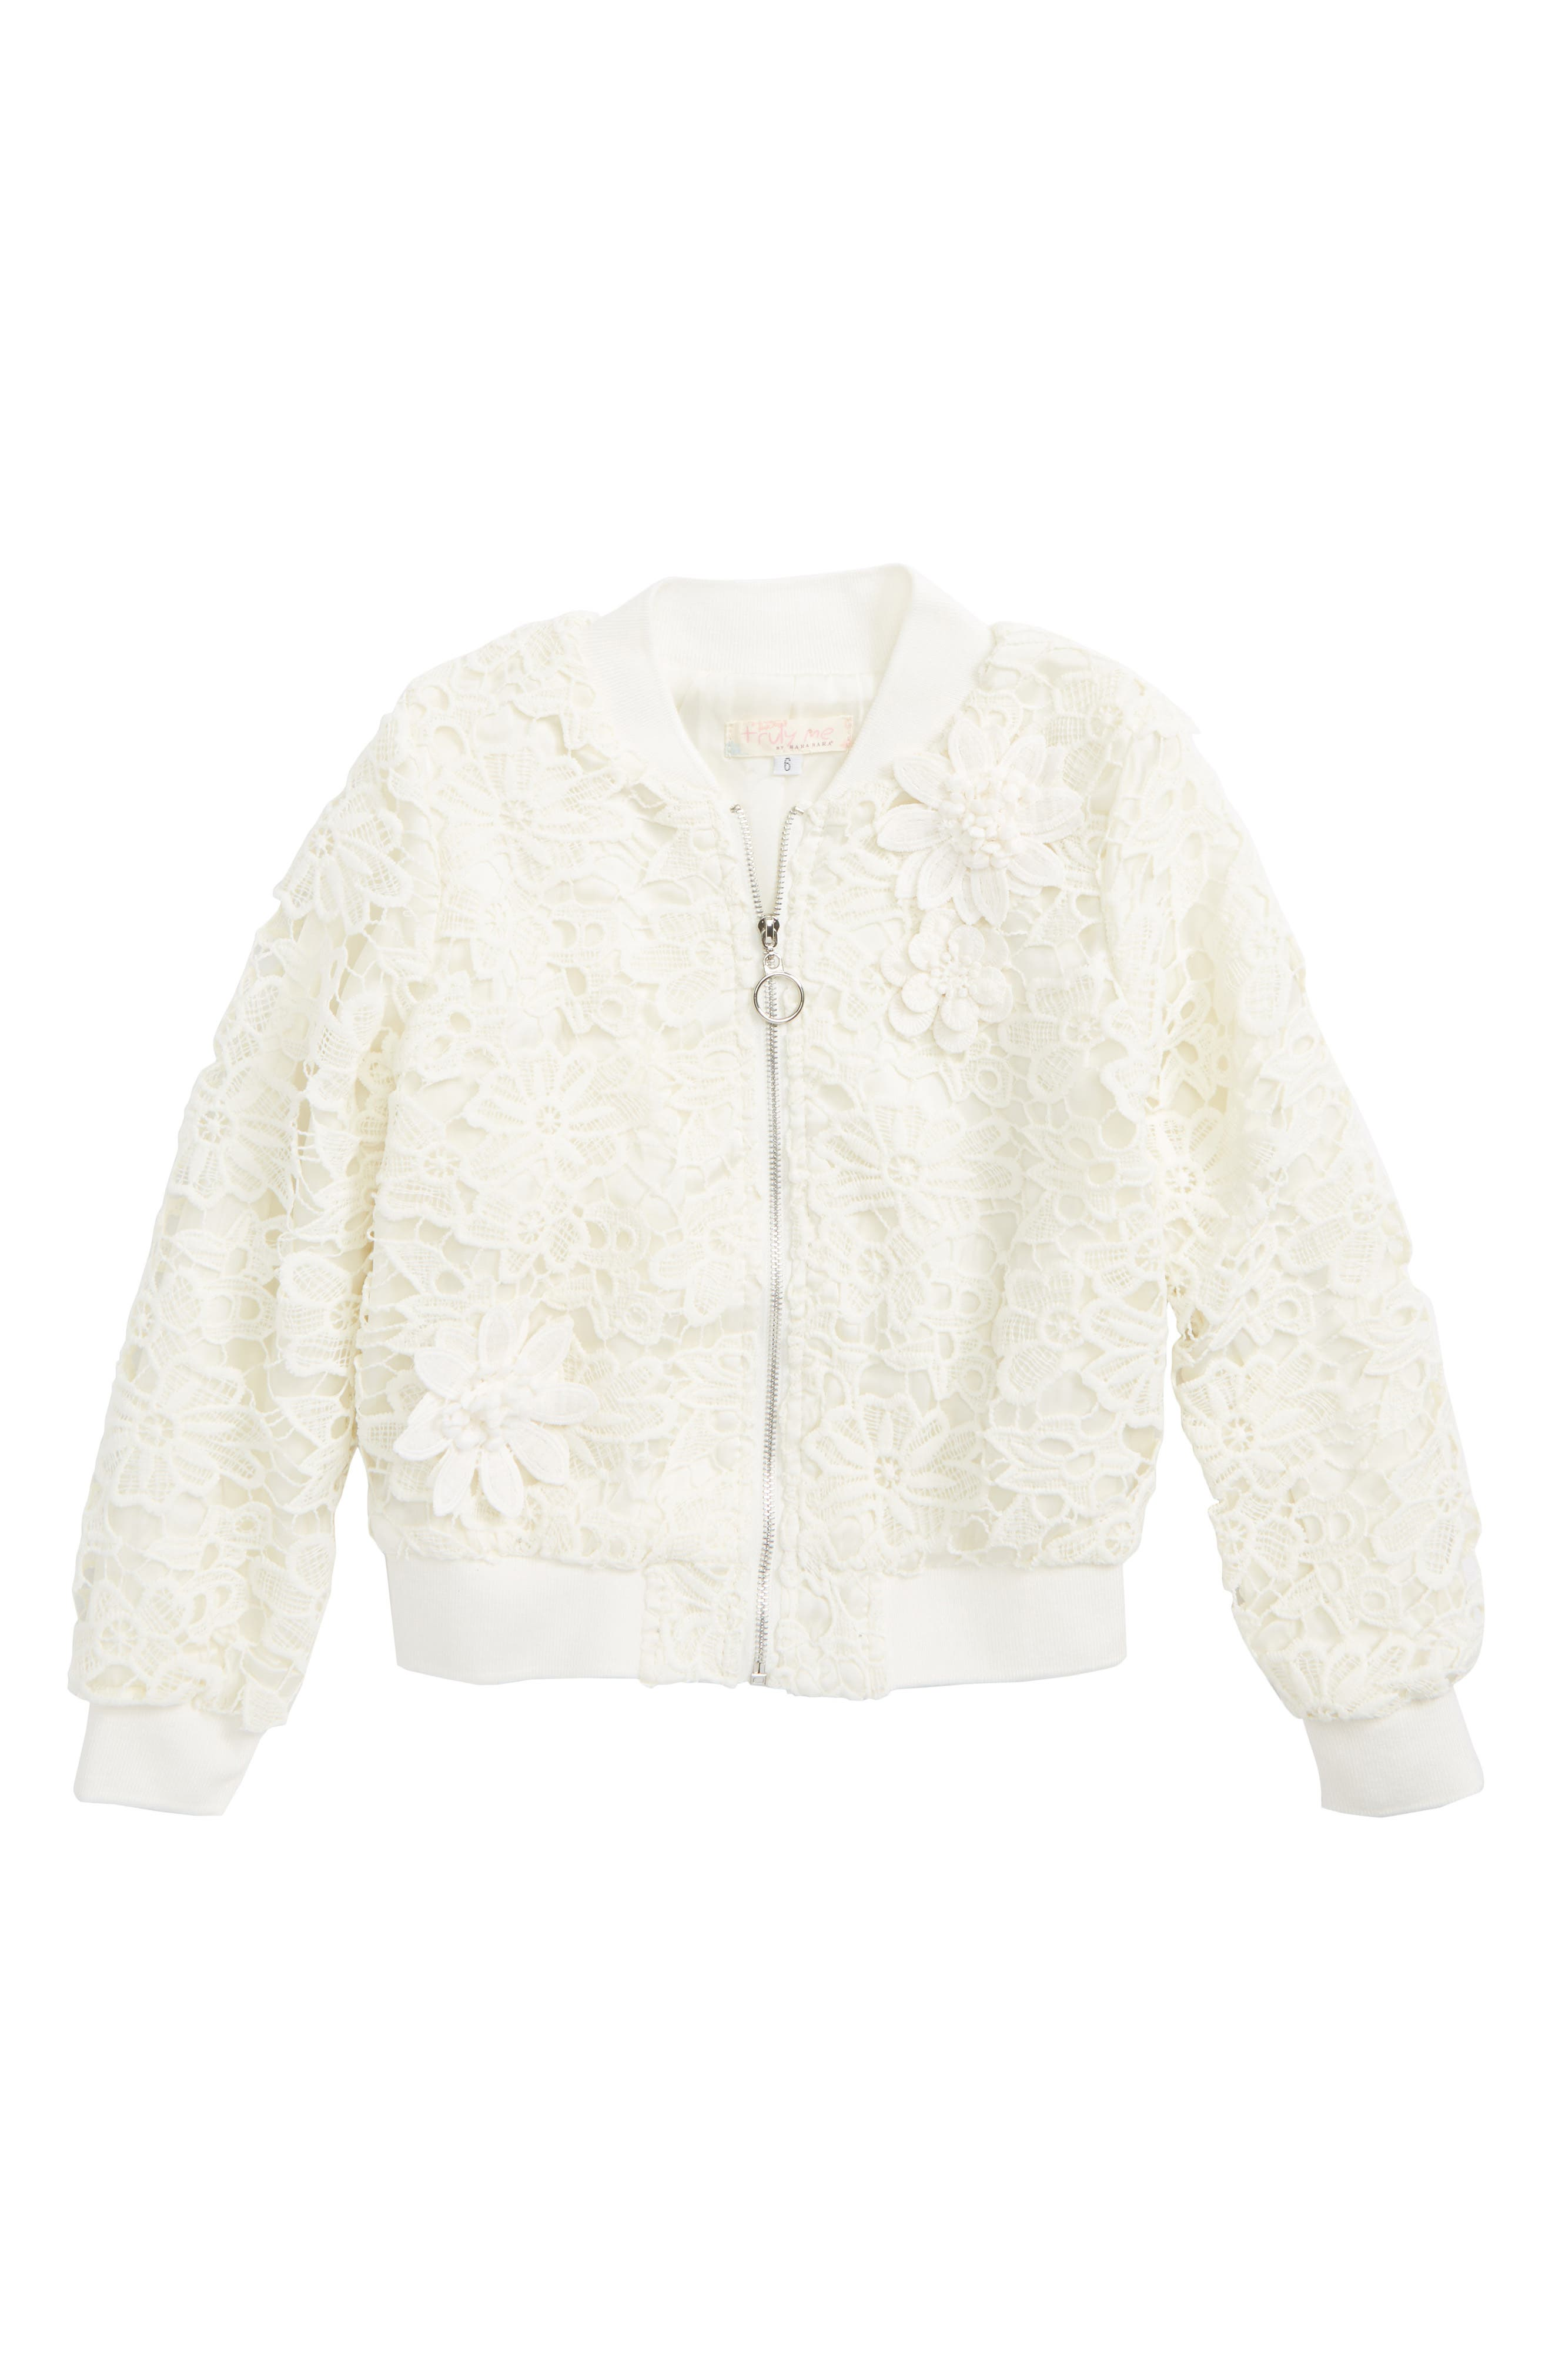 Lace Bomber Jacket,                         Main,                         color, Cream